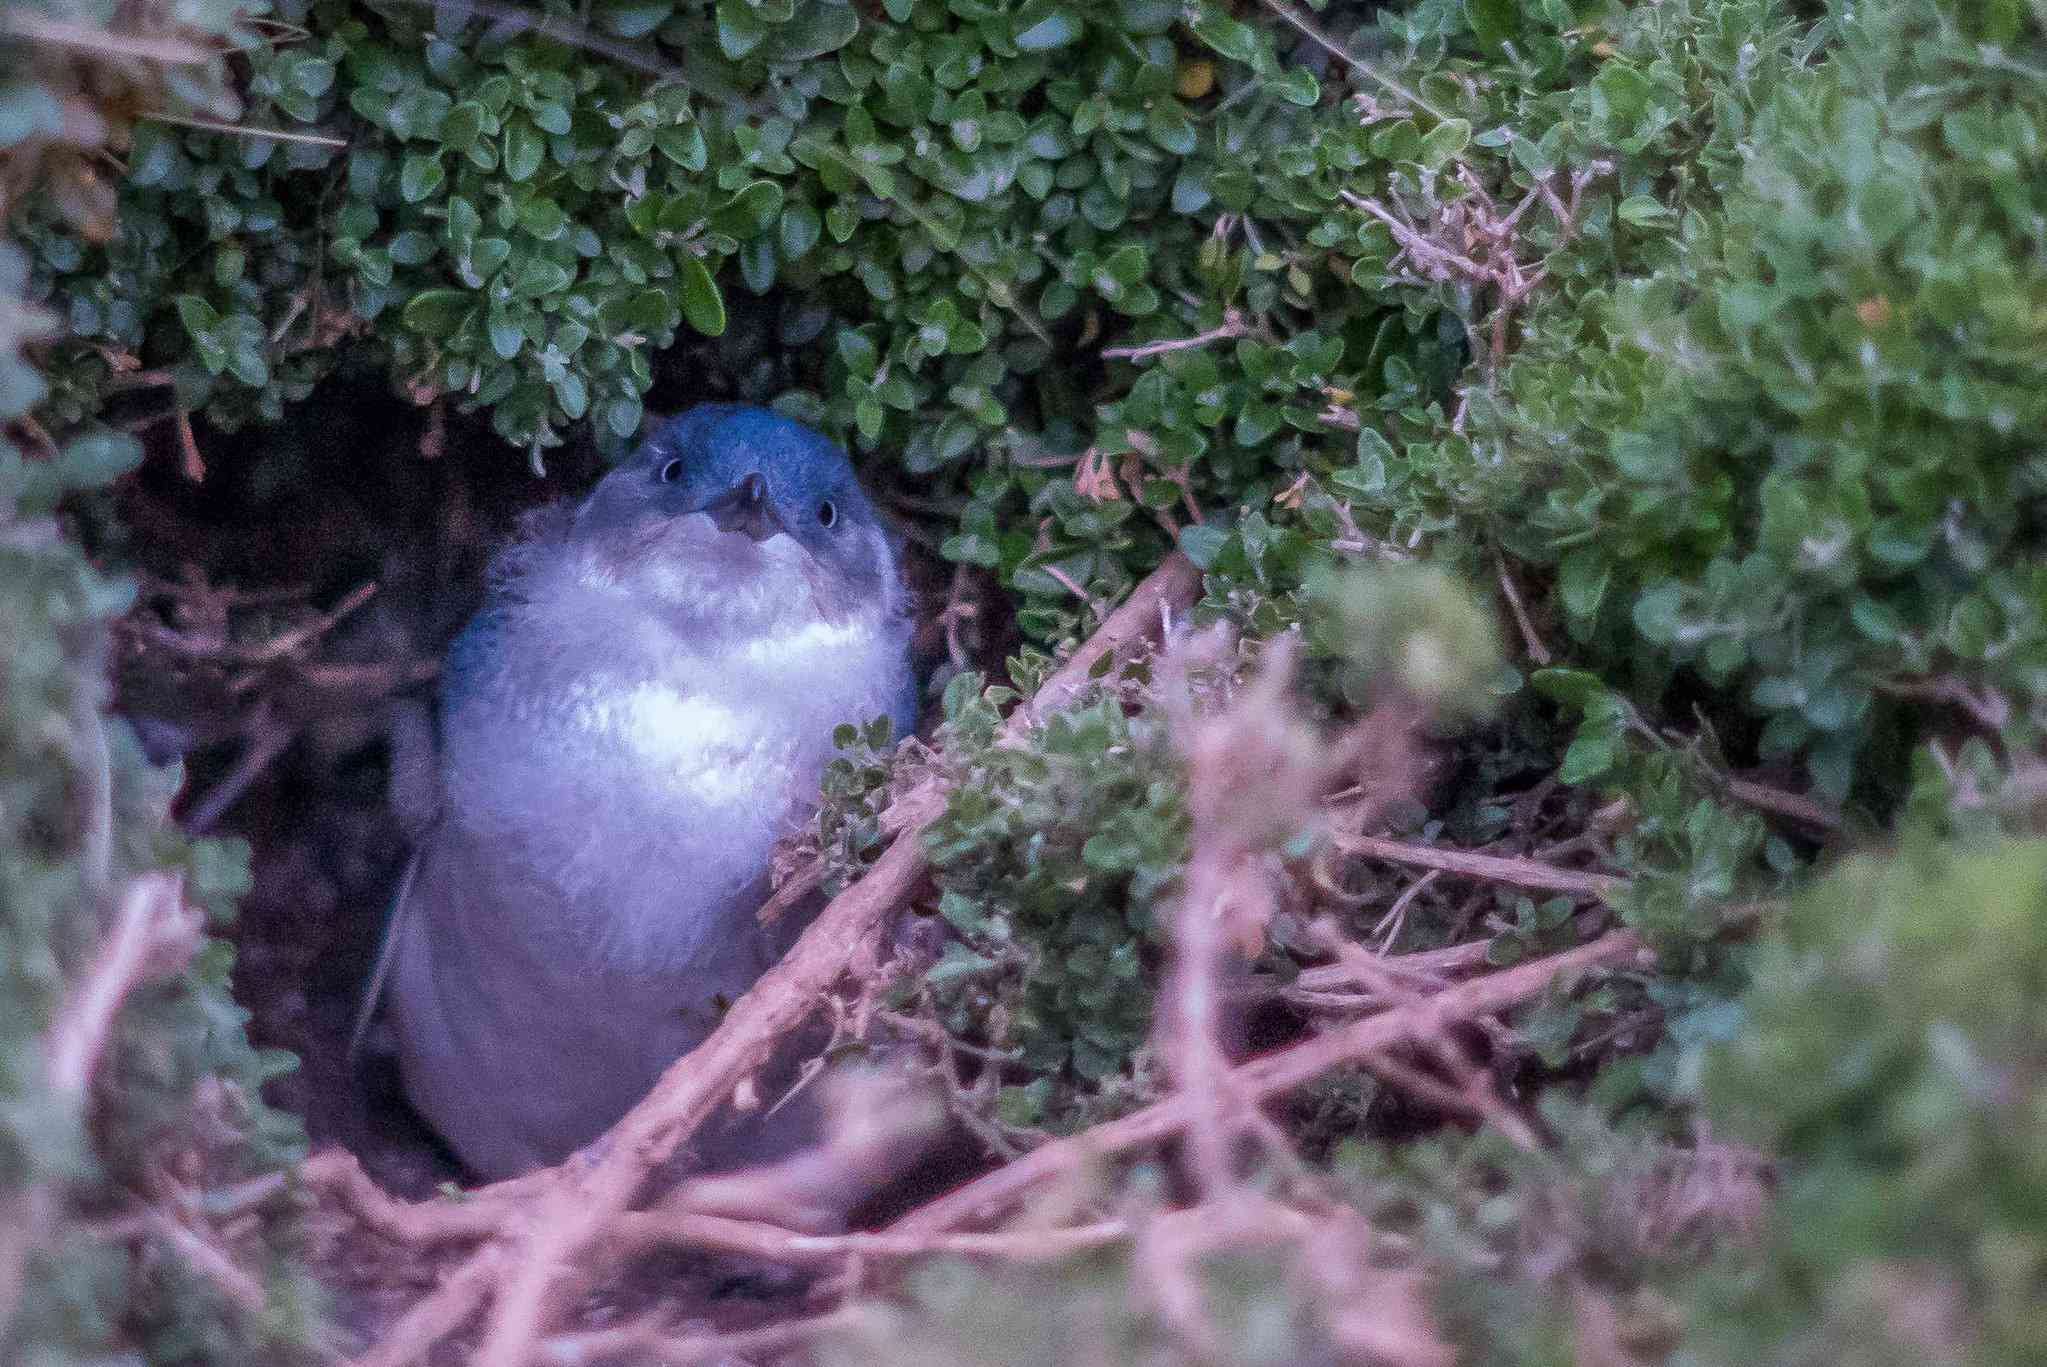 Fairy penguin chick in a burrow of sticks and foliage